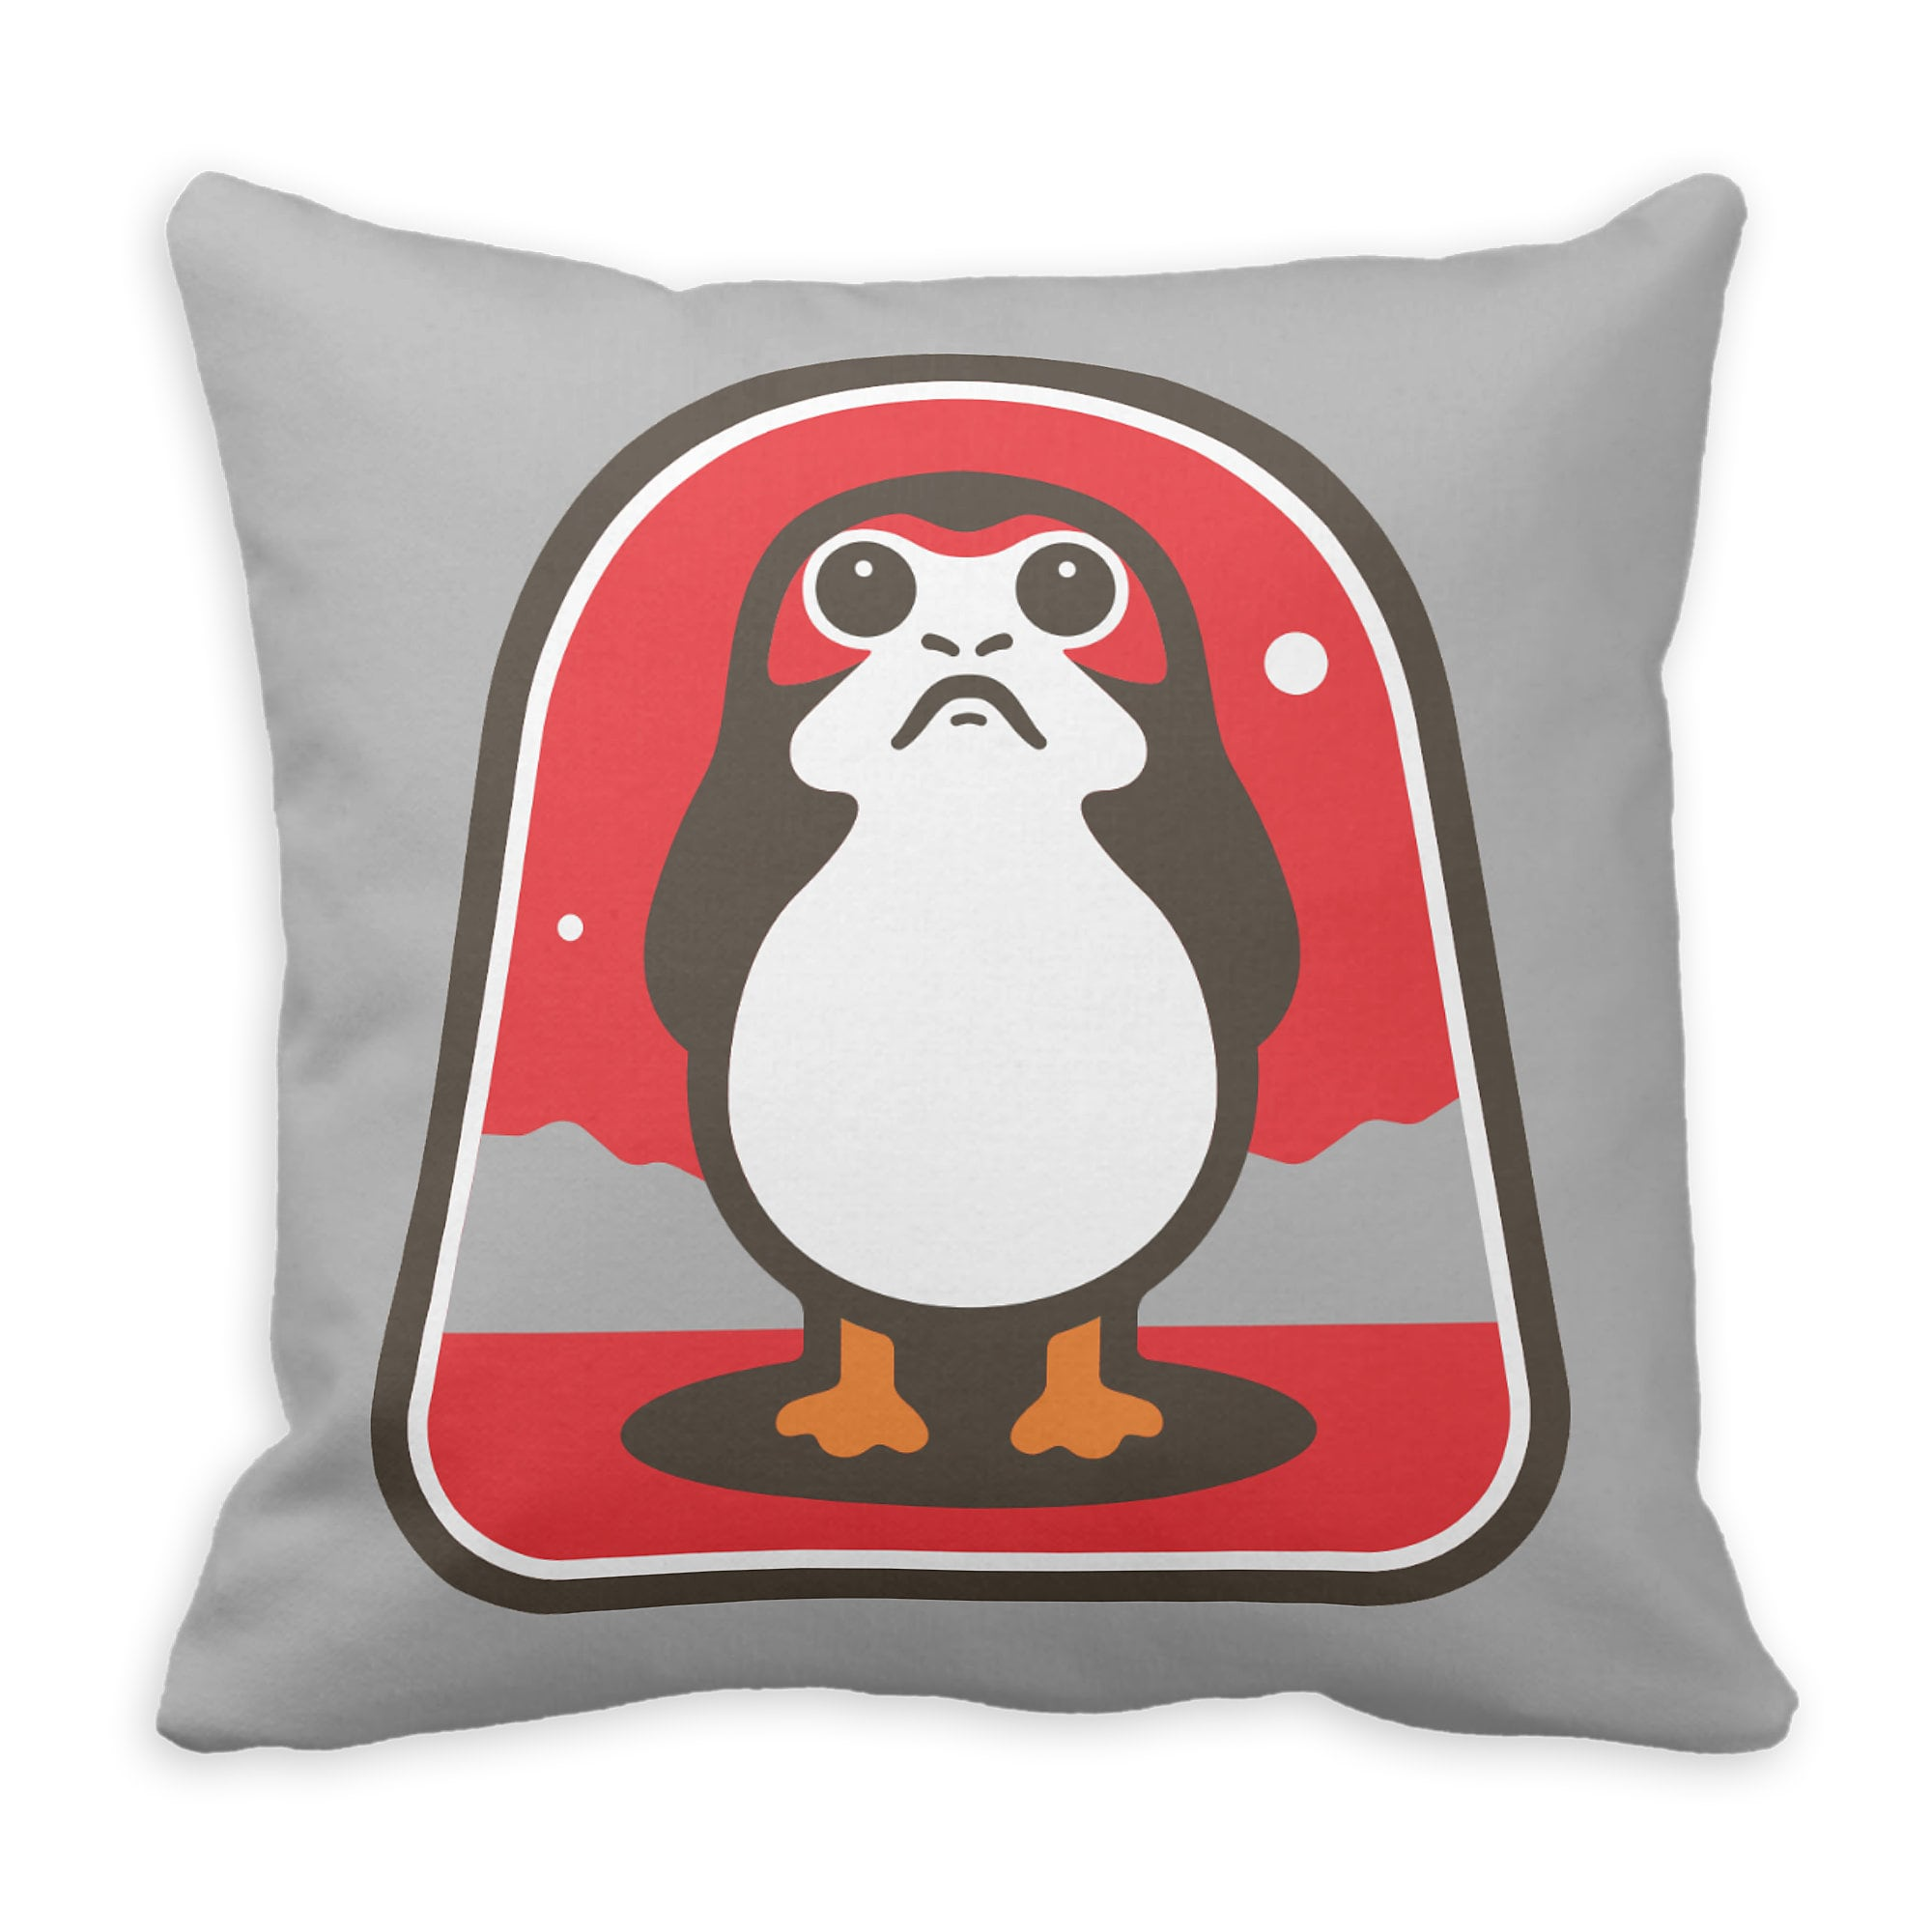 Porg Badge Pillow - Star Wars: The Last Jedi - Customizable